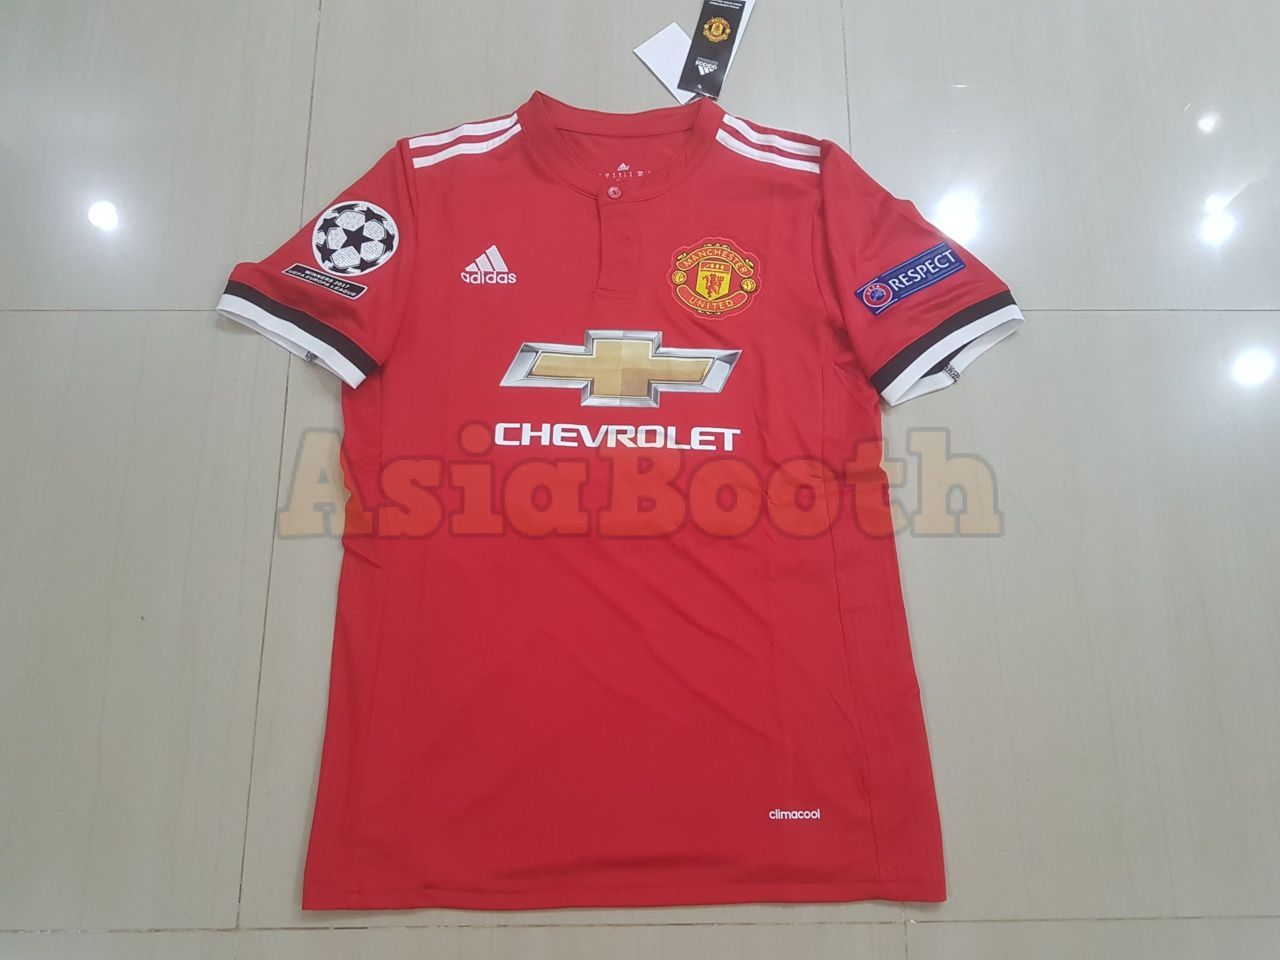 2017-2018 UEFA Champions League Manchester United Jersey For Men ... 751a76223